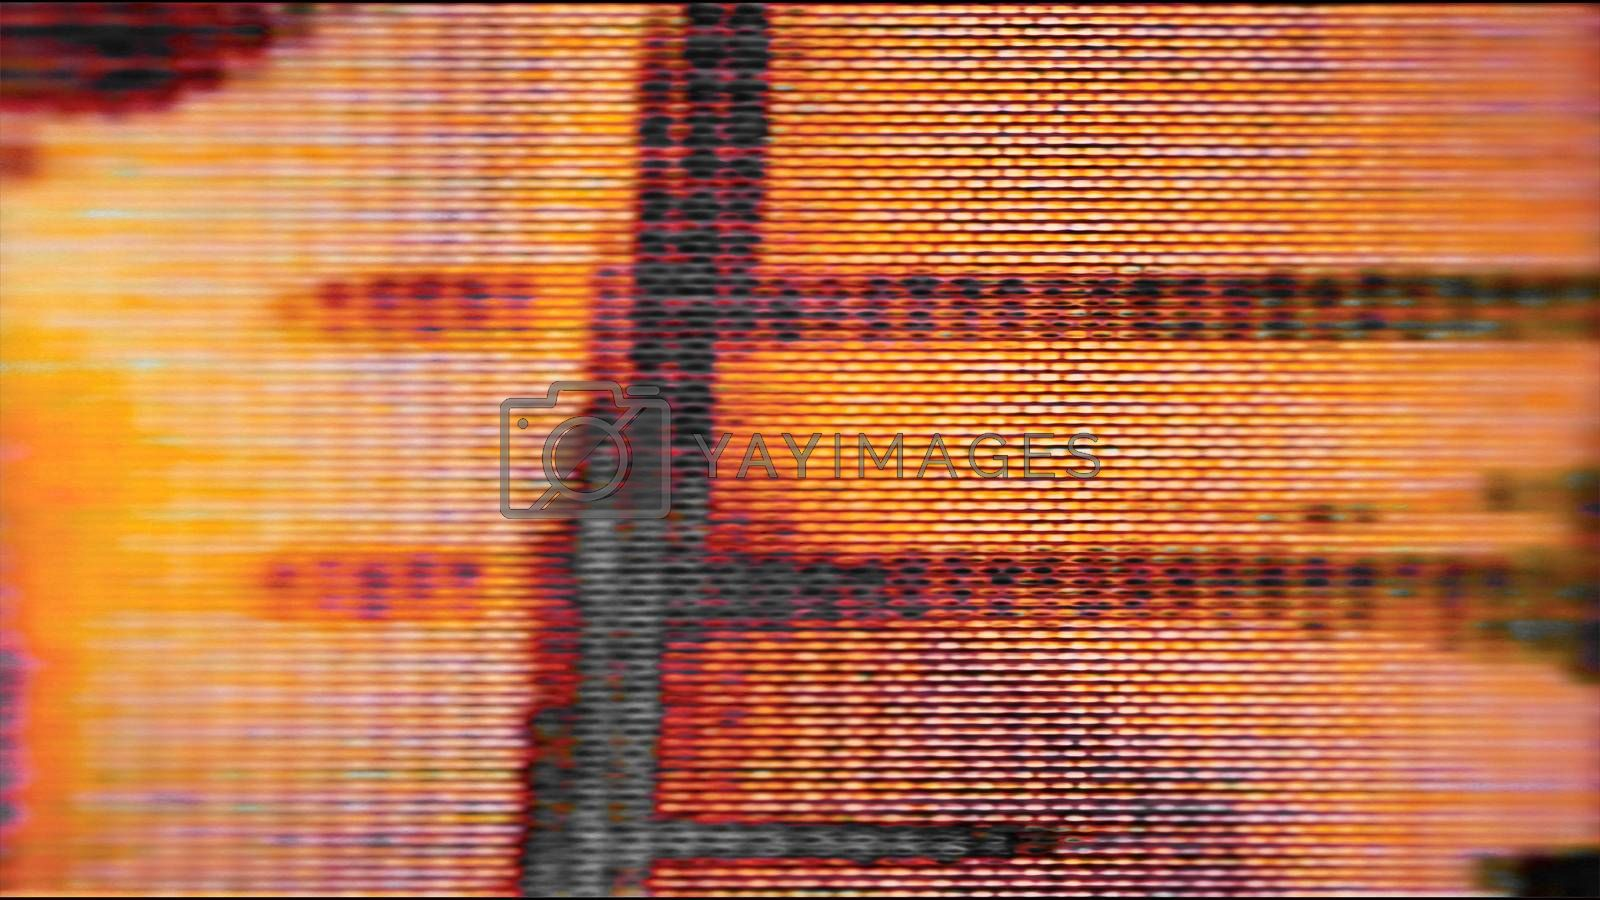 Future Tech 0433 - Futuristic technology screen communication with abstract noise.